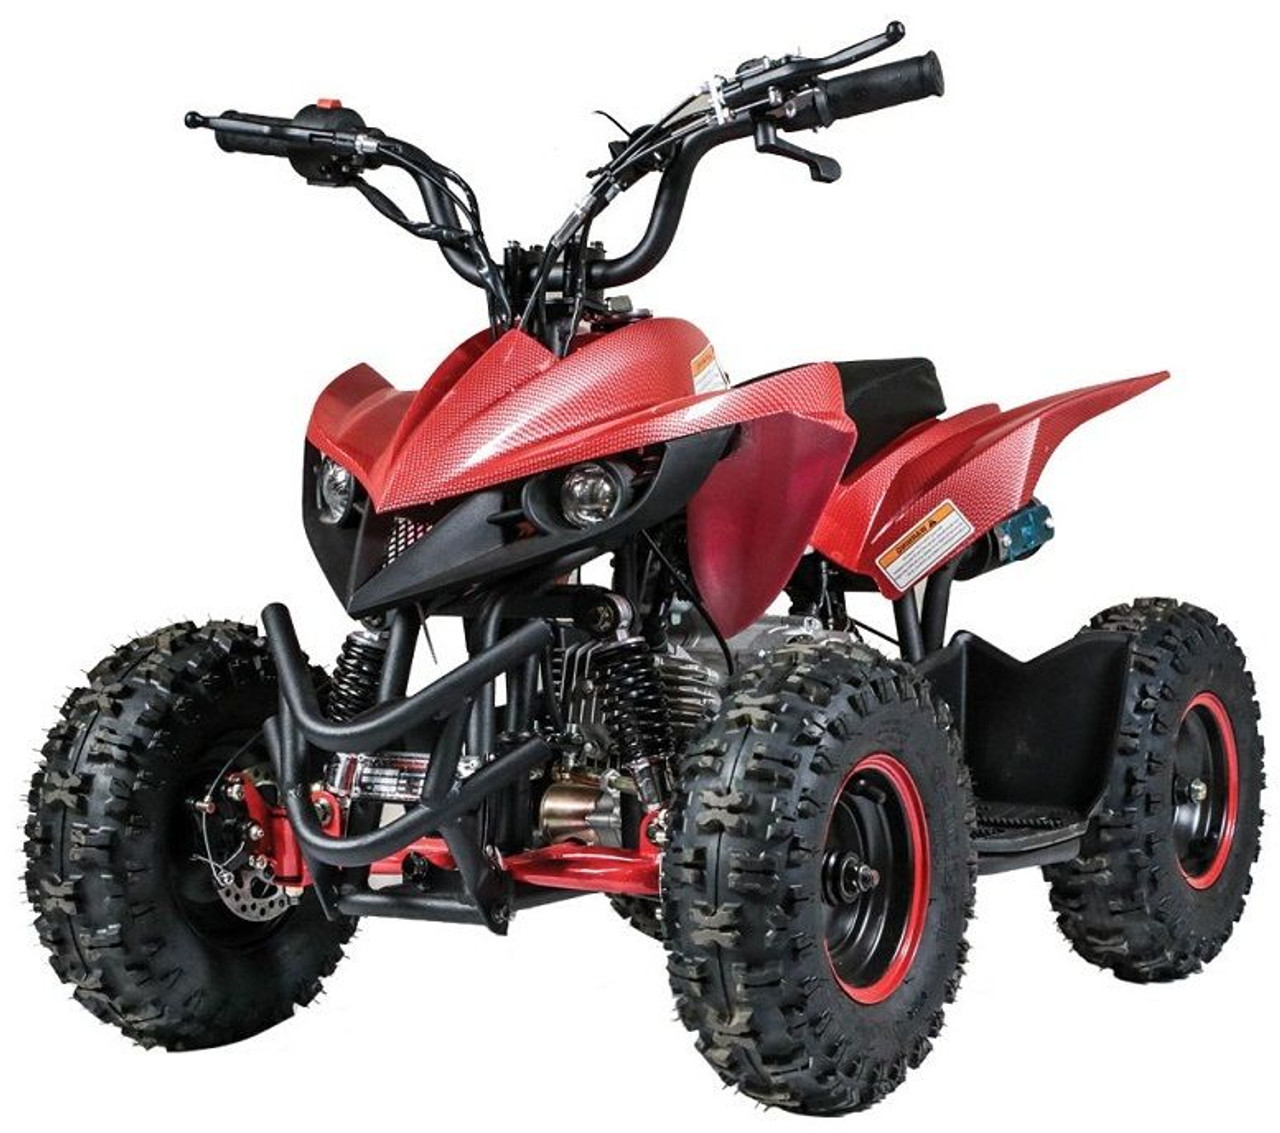 New Vitacci Mini Racer 60cc ATV, Single Cylinder, 4-Stroke, Air Cooled, Automatic, Electric Start